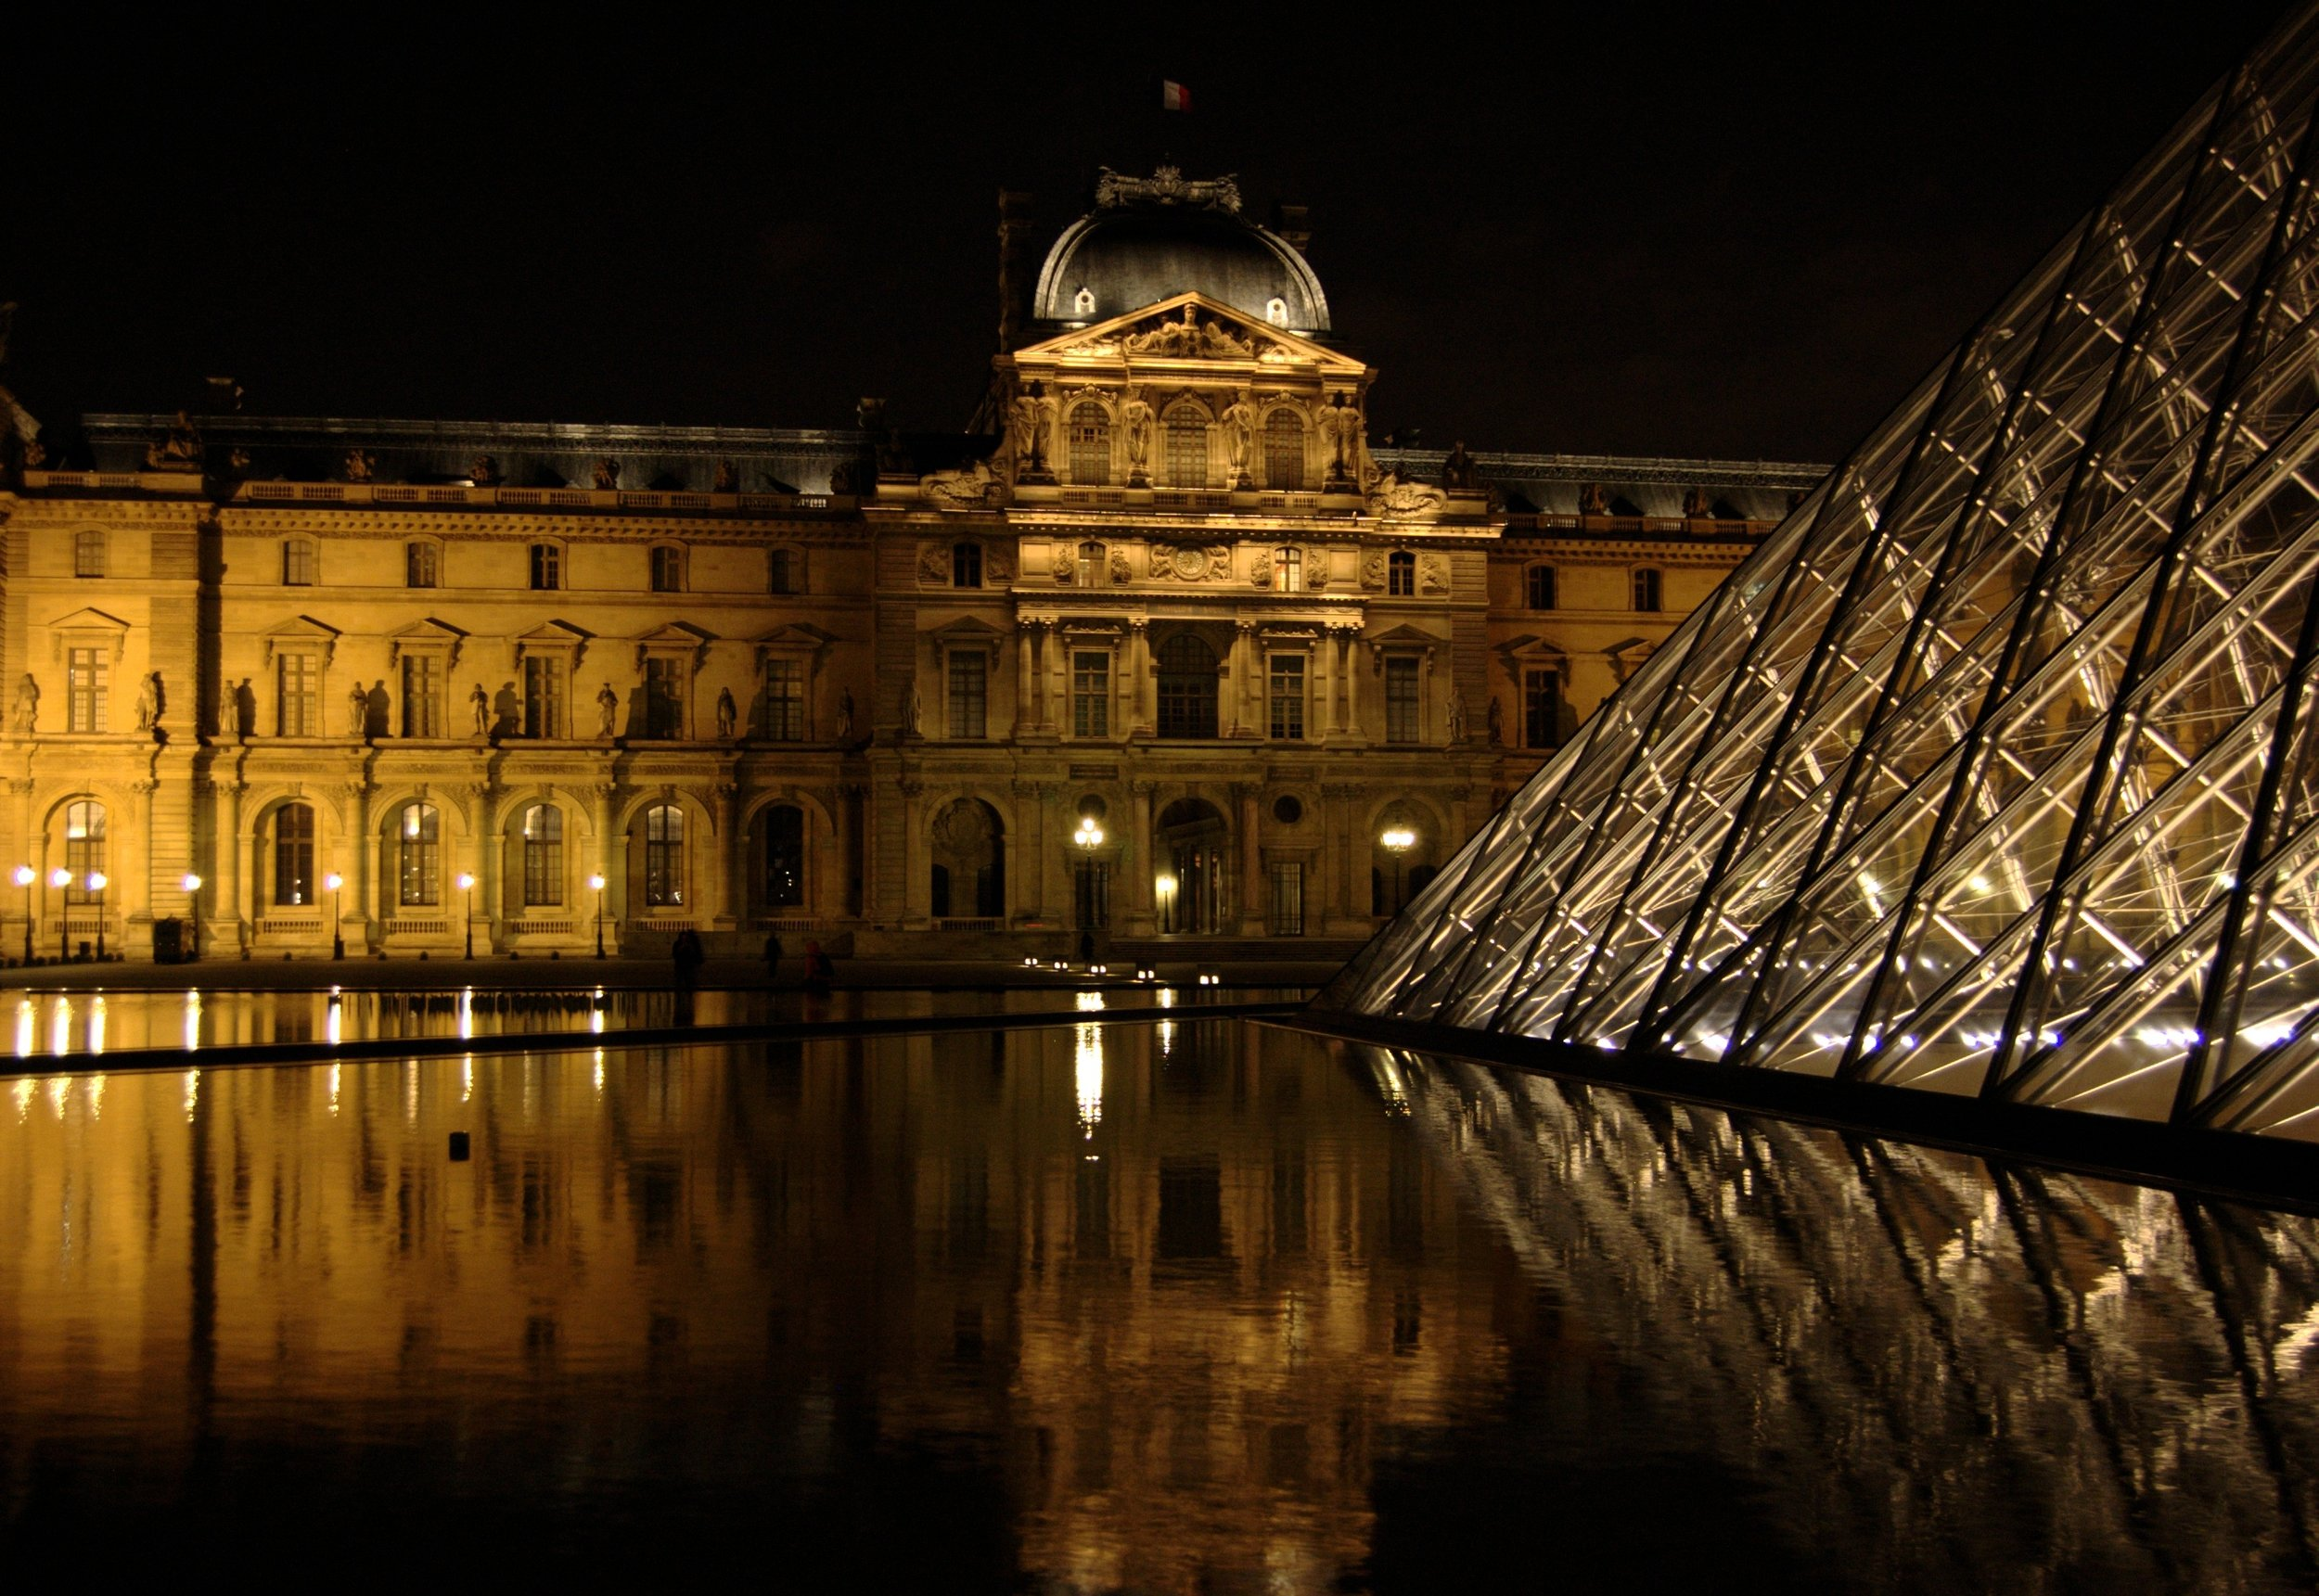 The Louvre by Pipiten - Flickr, CC BY-SA 2.0 via  Wikimedia Commons